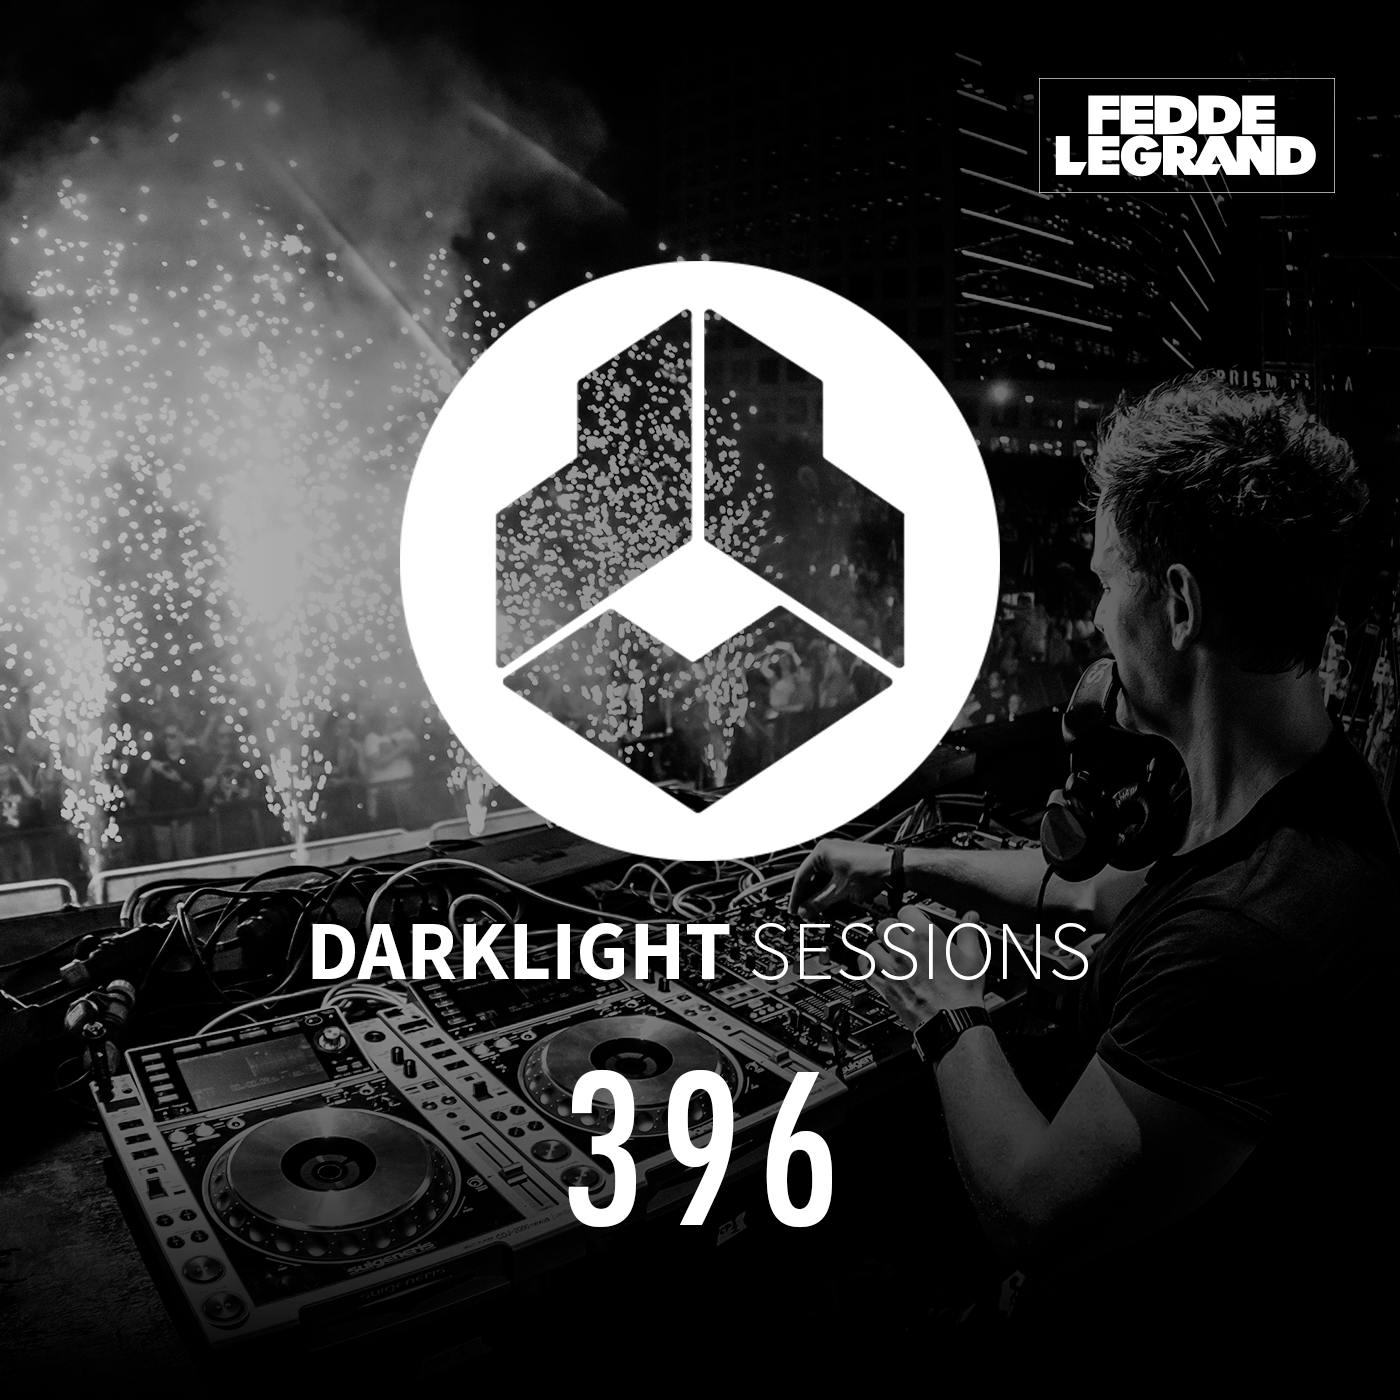 Darklight Sessions 396